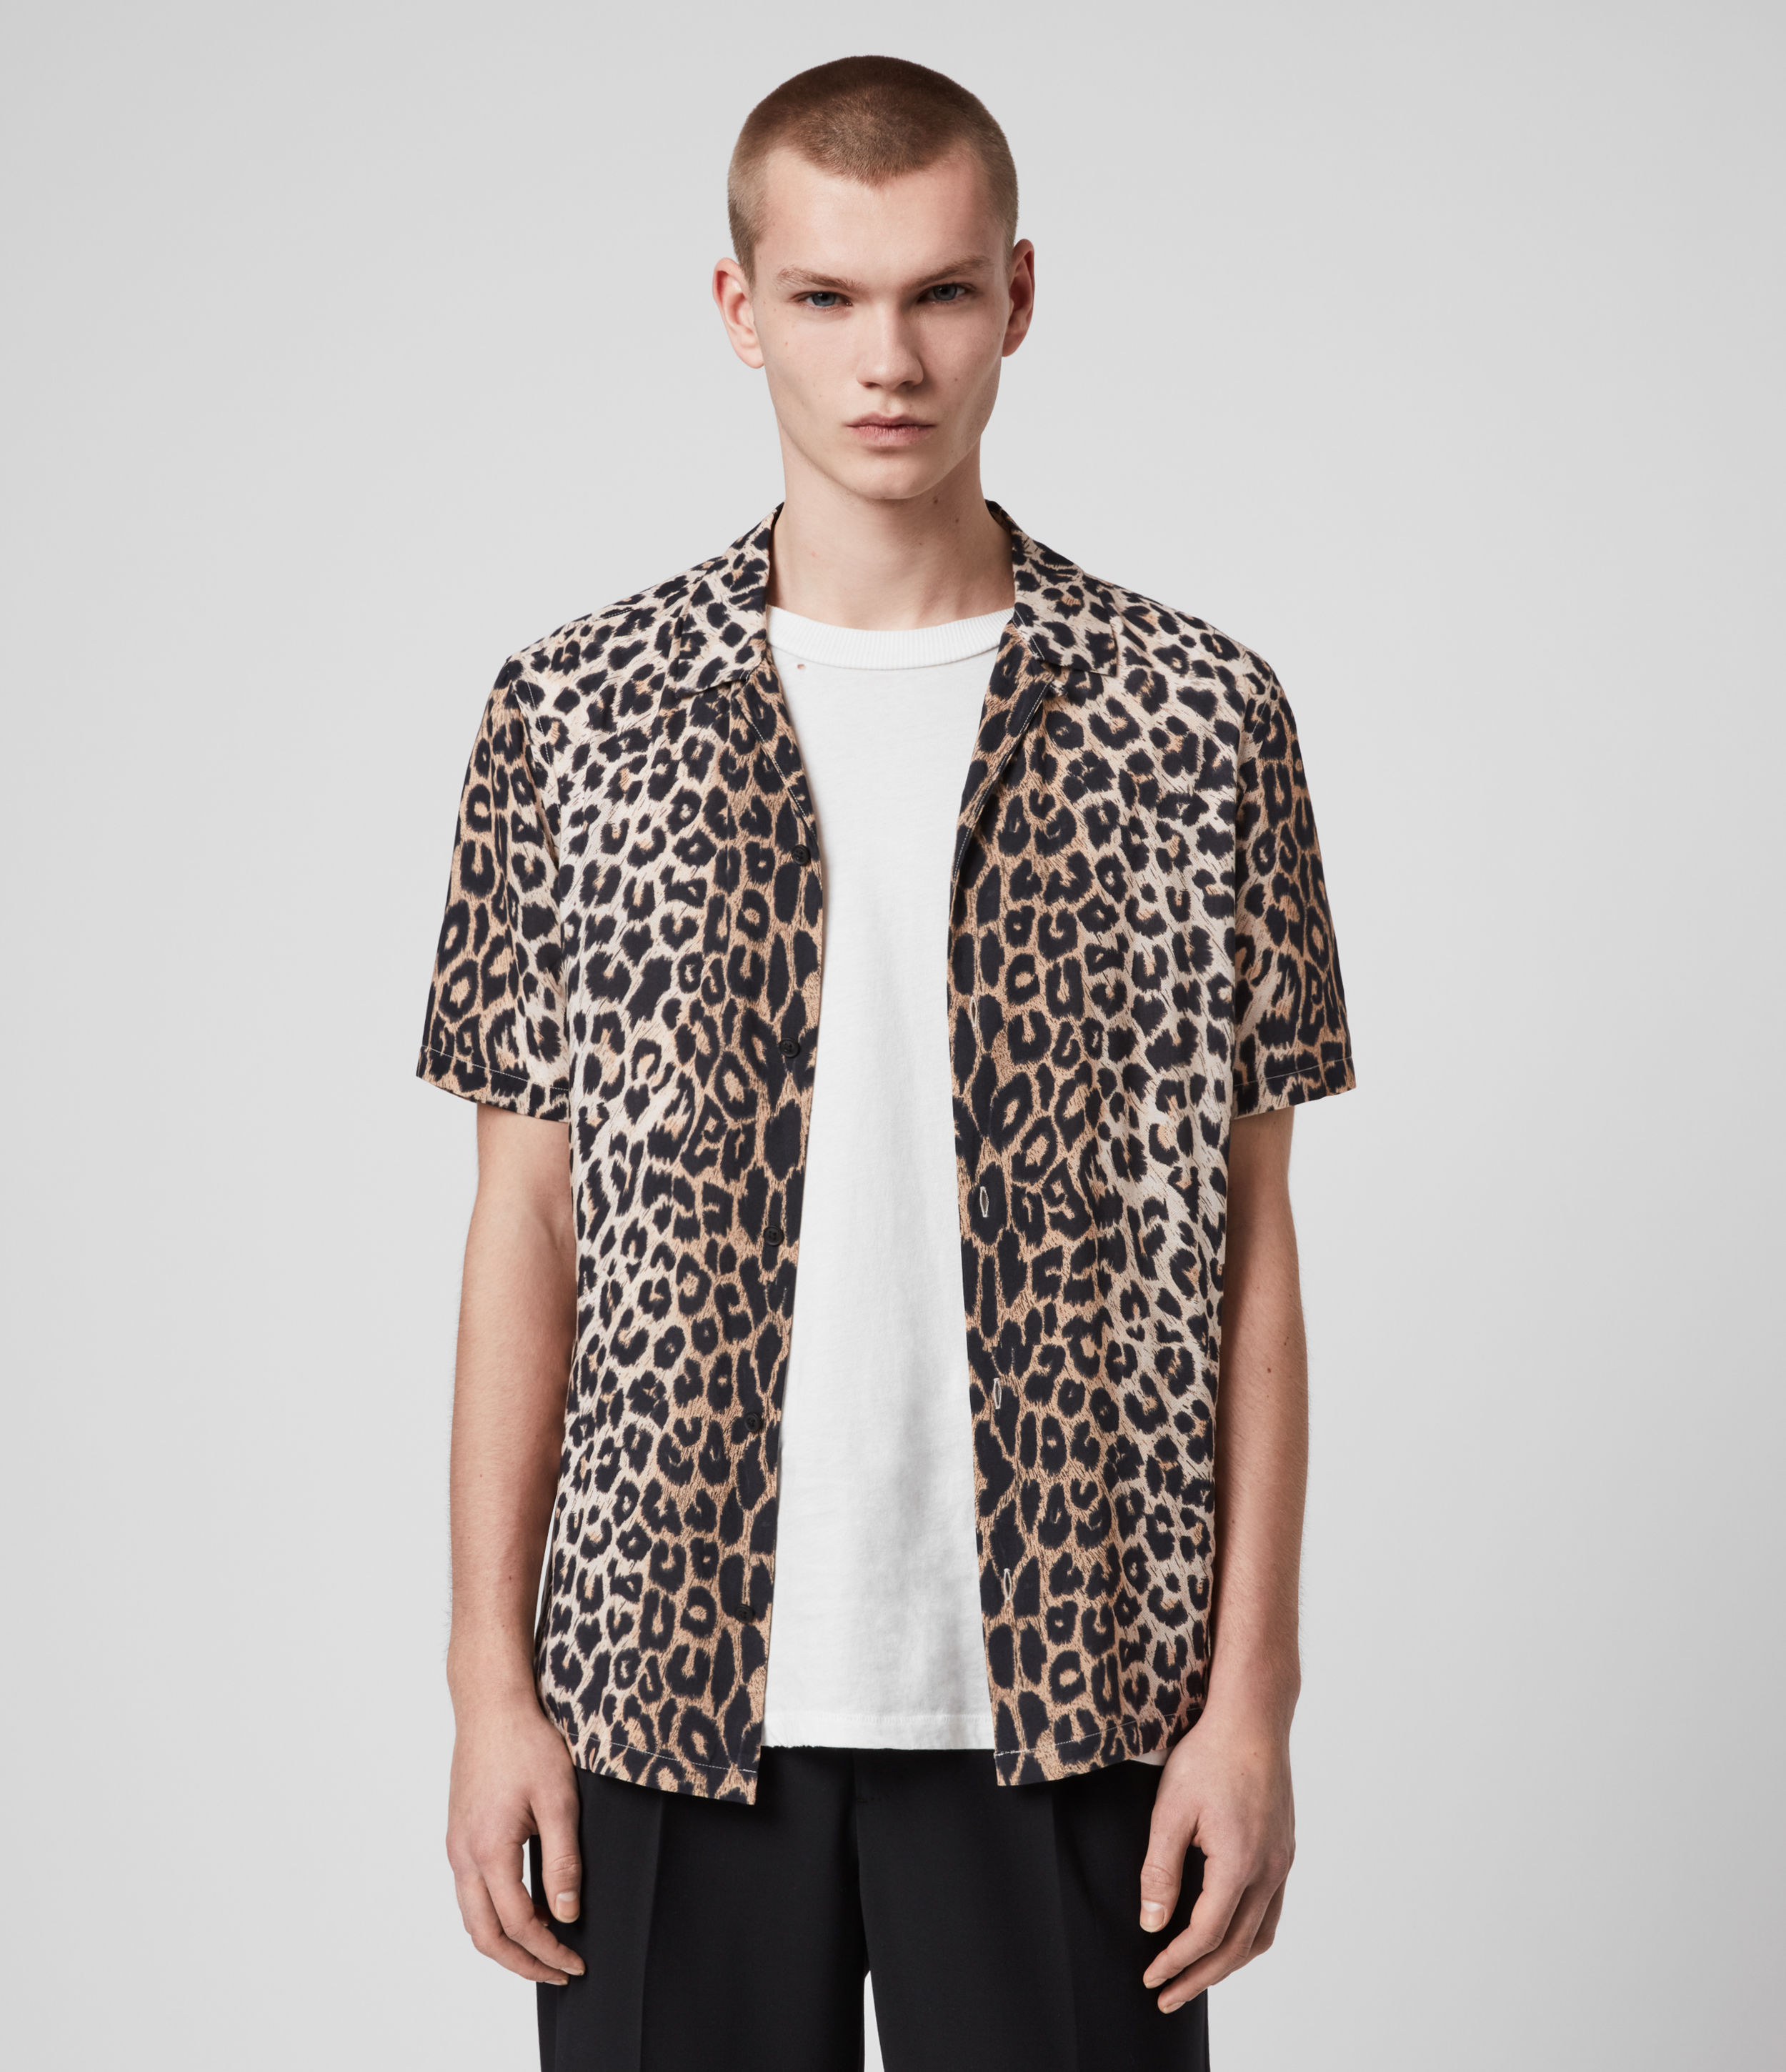 AllSaints Men's All-Over Leopard Print Lightweight Button Closure Short Sleeve Shirt, Brown and Blac